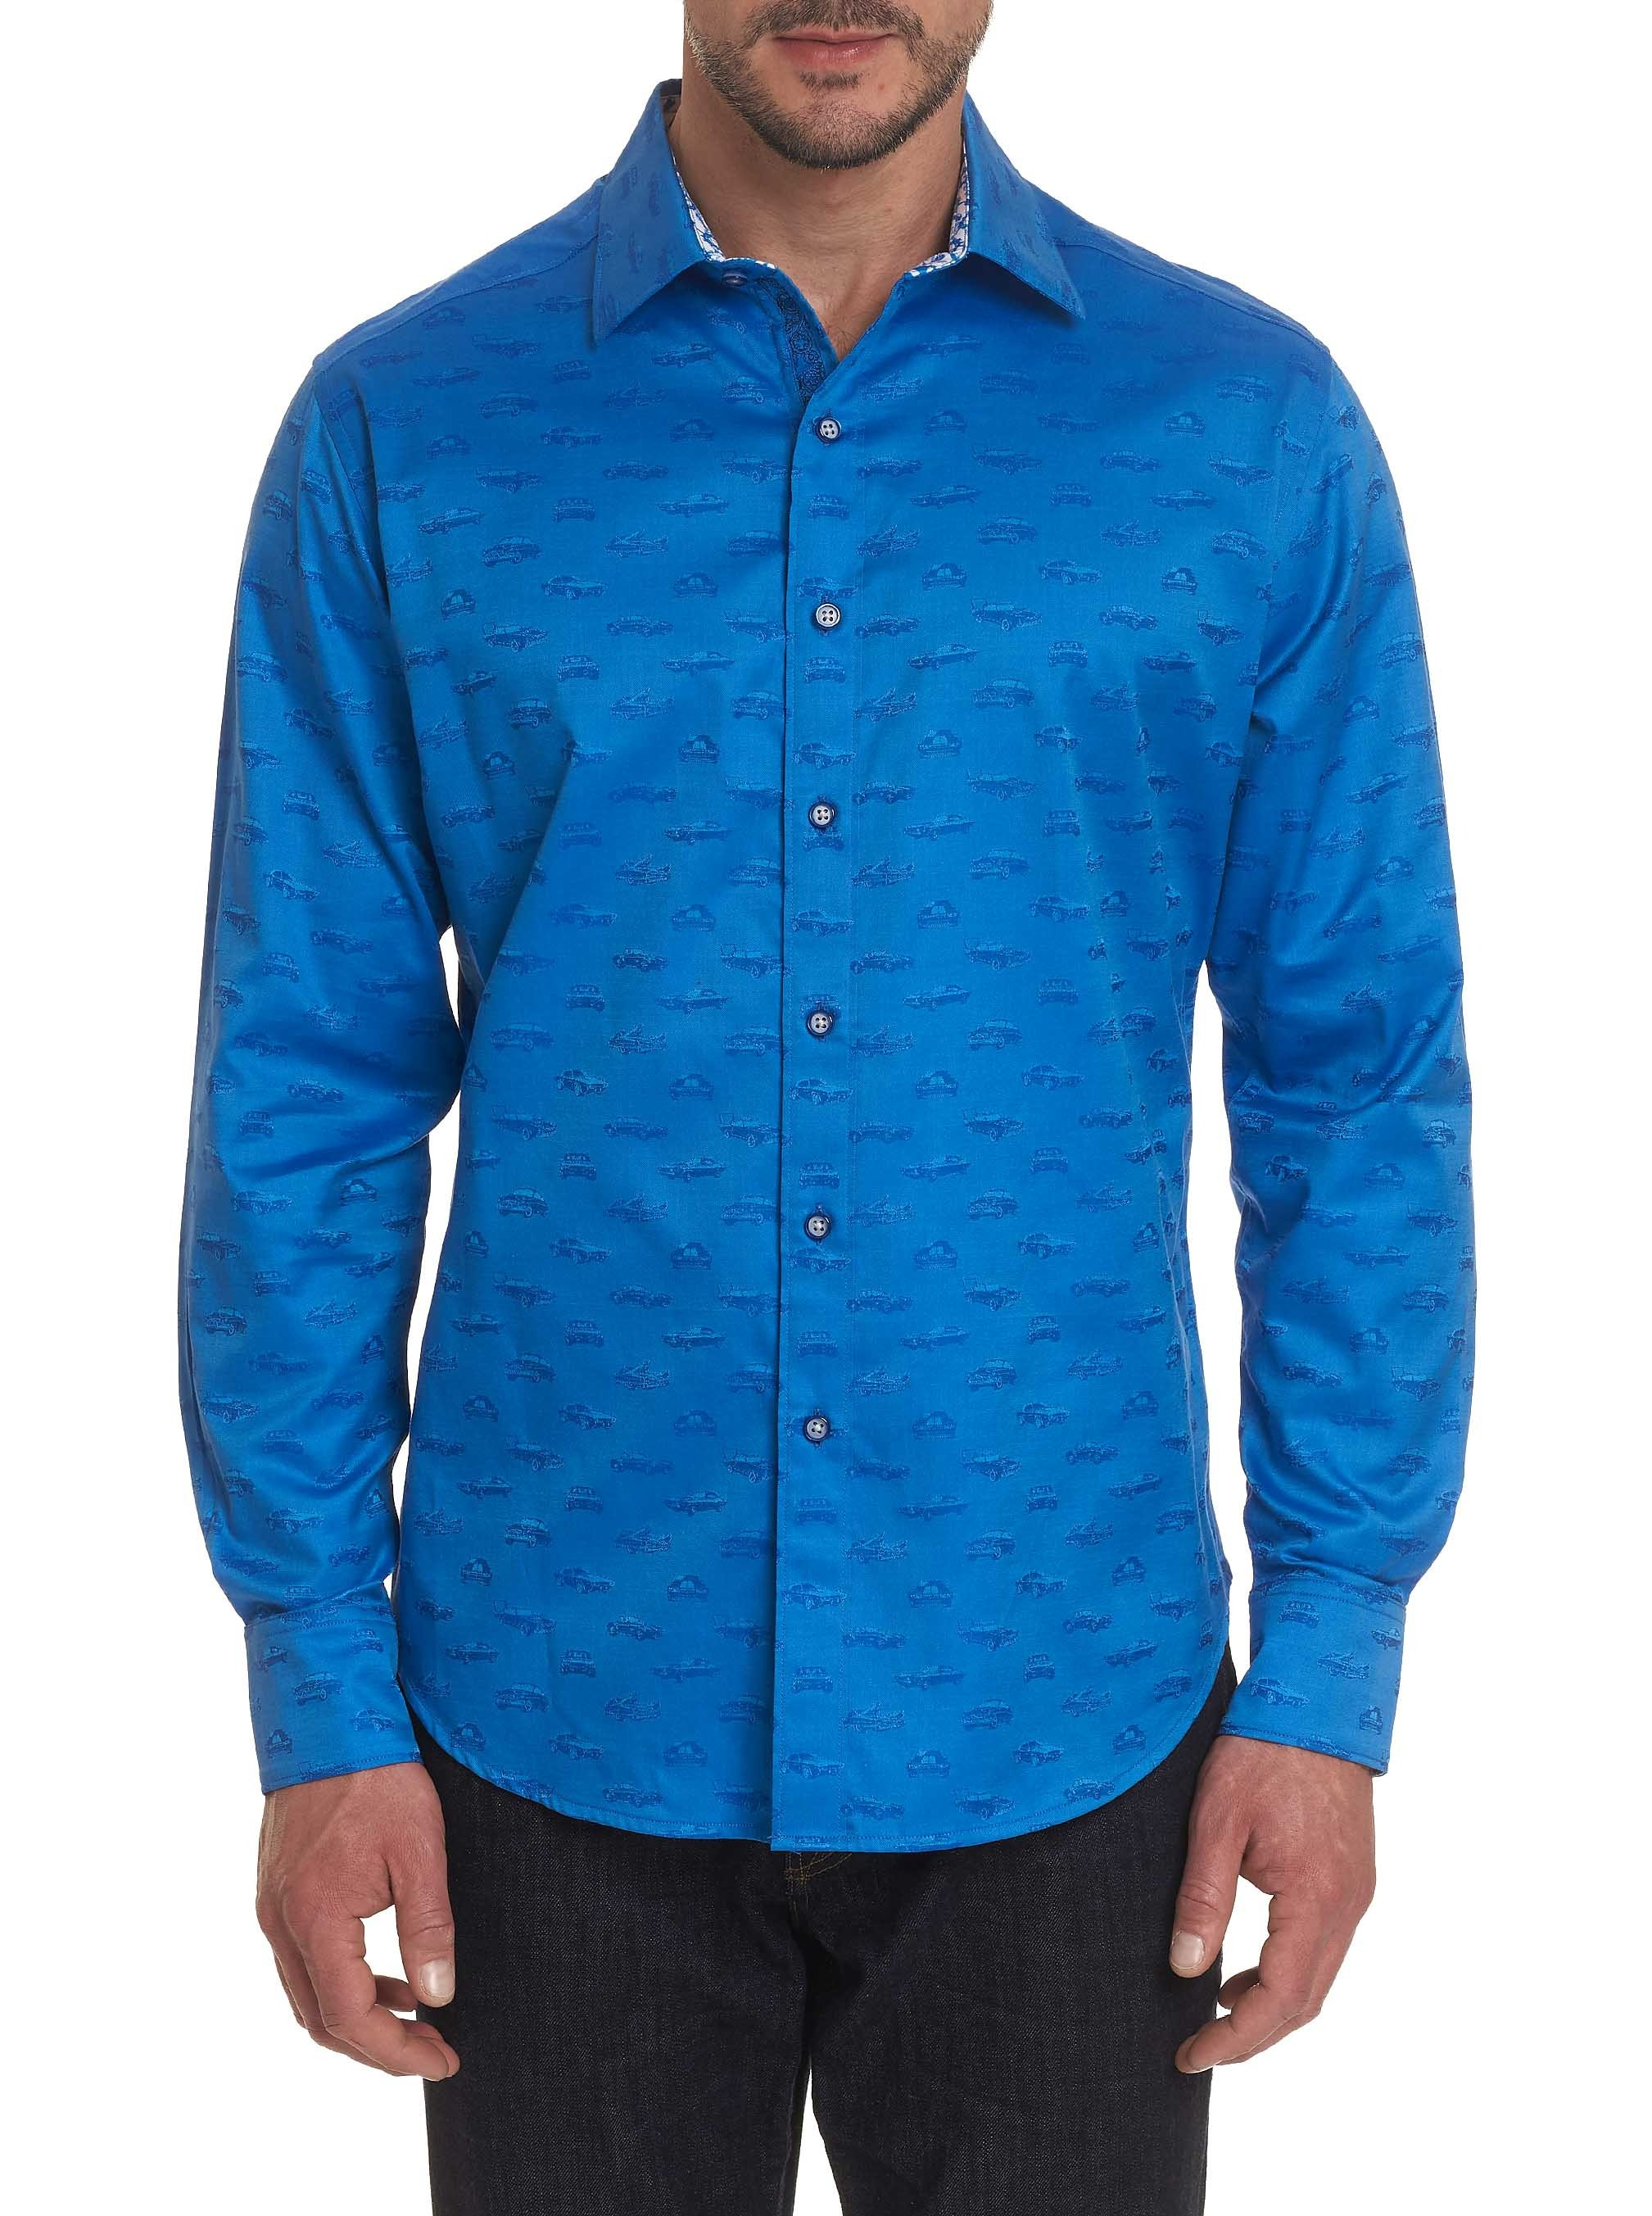 Robert Graham Car Enthusiast Sport Shirt Cobalt